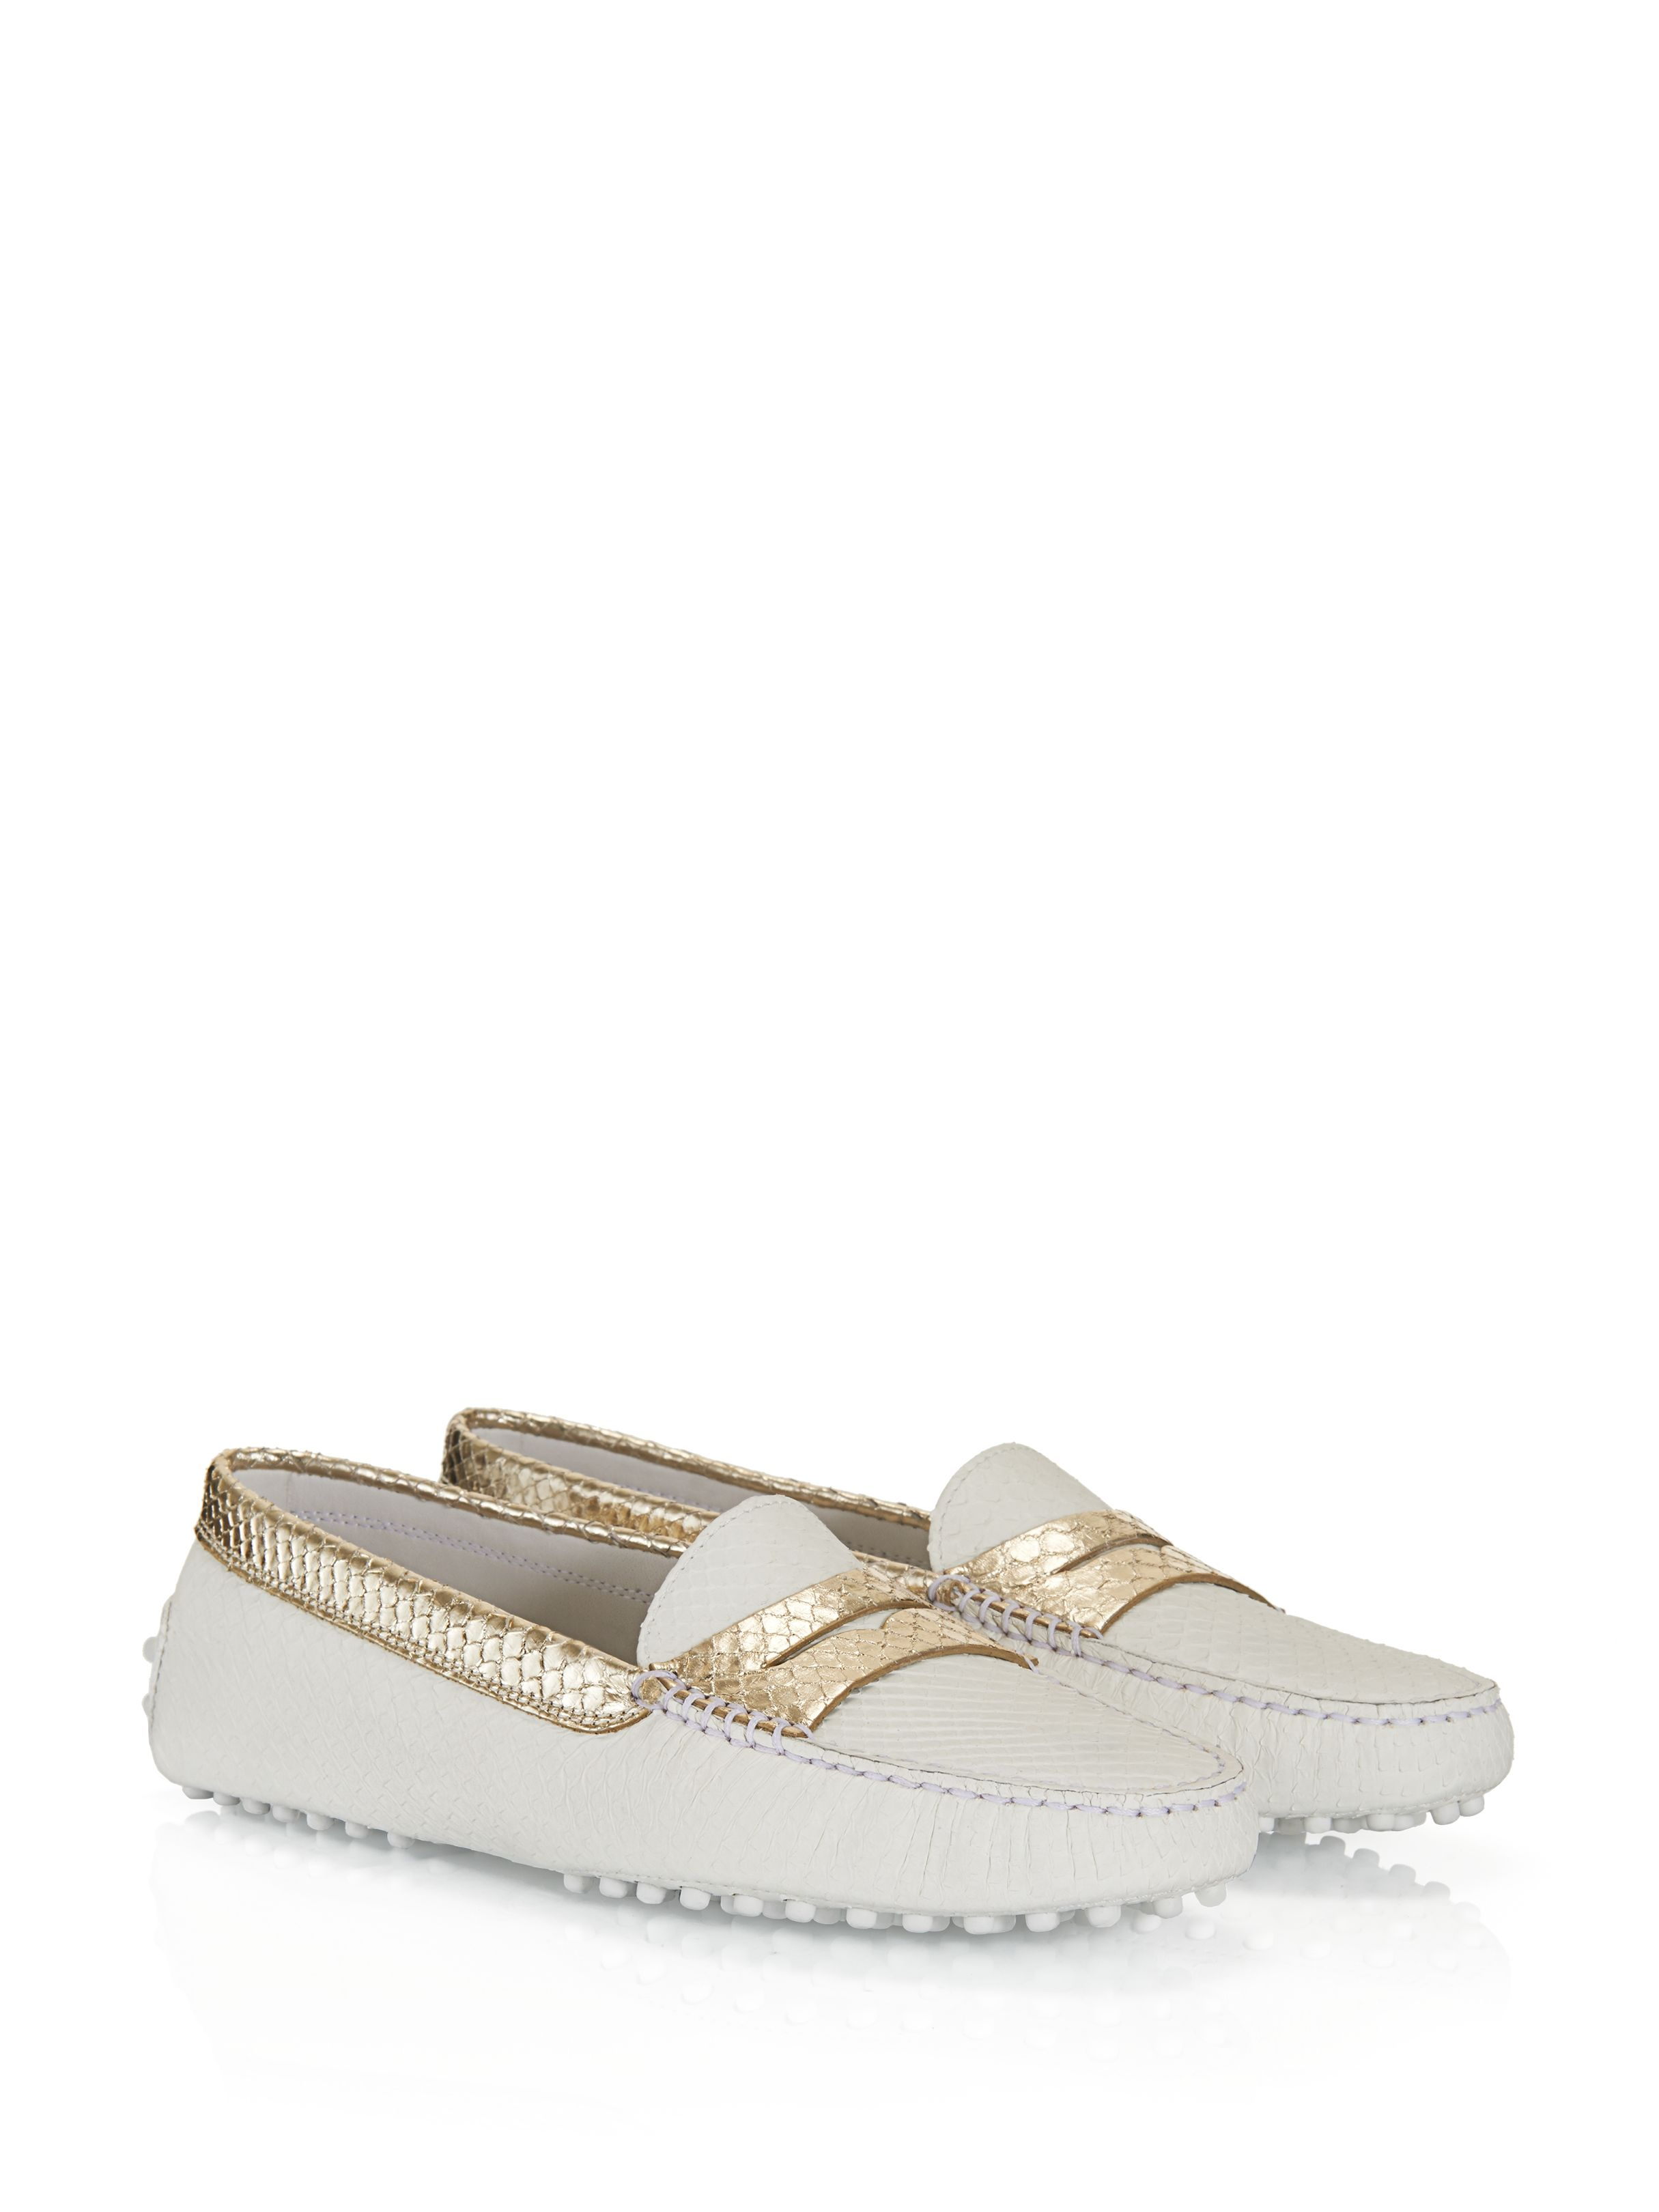 Steve Madden Women's platform laceless sneakers in gray faux leather with fur Tod's - Gommino Mocassino In Pitone - XXW00G000105LI1556 - Tod's Gommino penny loafers crafted in exquisite python leather, with gold-trimmed penny bar and side panels, embellished with hand-made exposed stitching and iconic rubber pebble outsole. - Python leather upperGold-plated penny bar and trimsHand-made exposed stitchingIconic gommino rubber pebble outsoleGommino rubber pebble detailing on the heelVery fine precious leather. Thin and delicate materials which may tear if